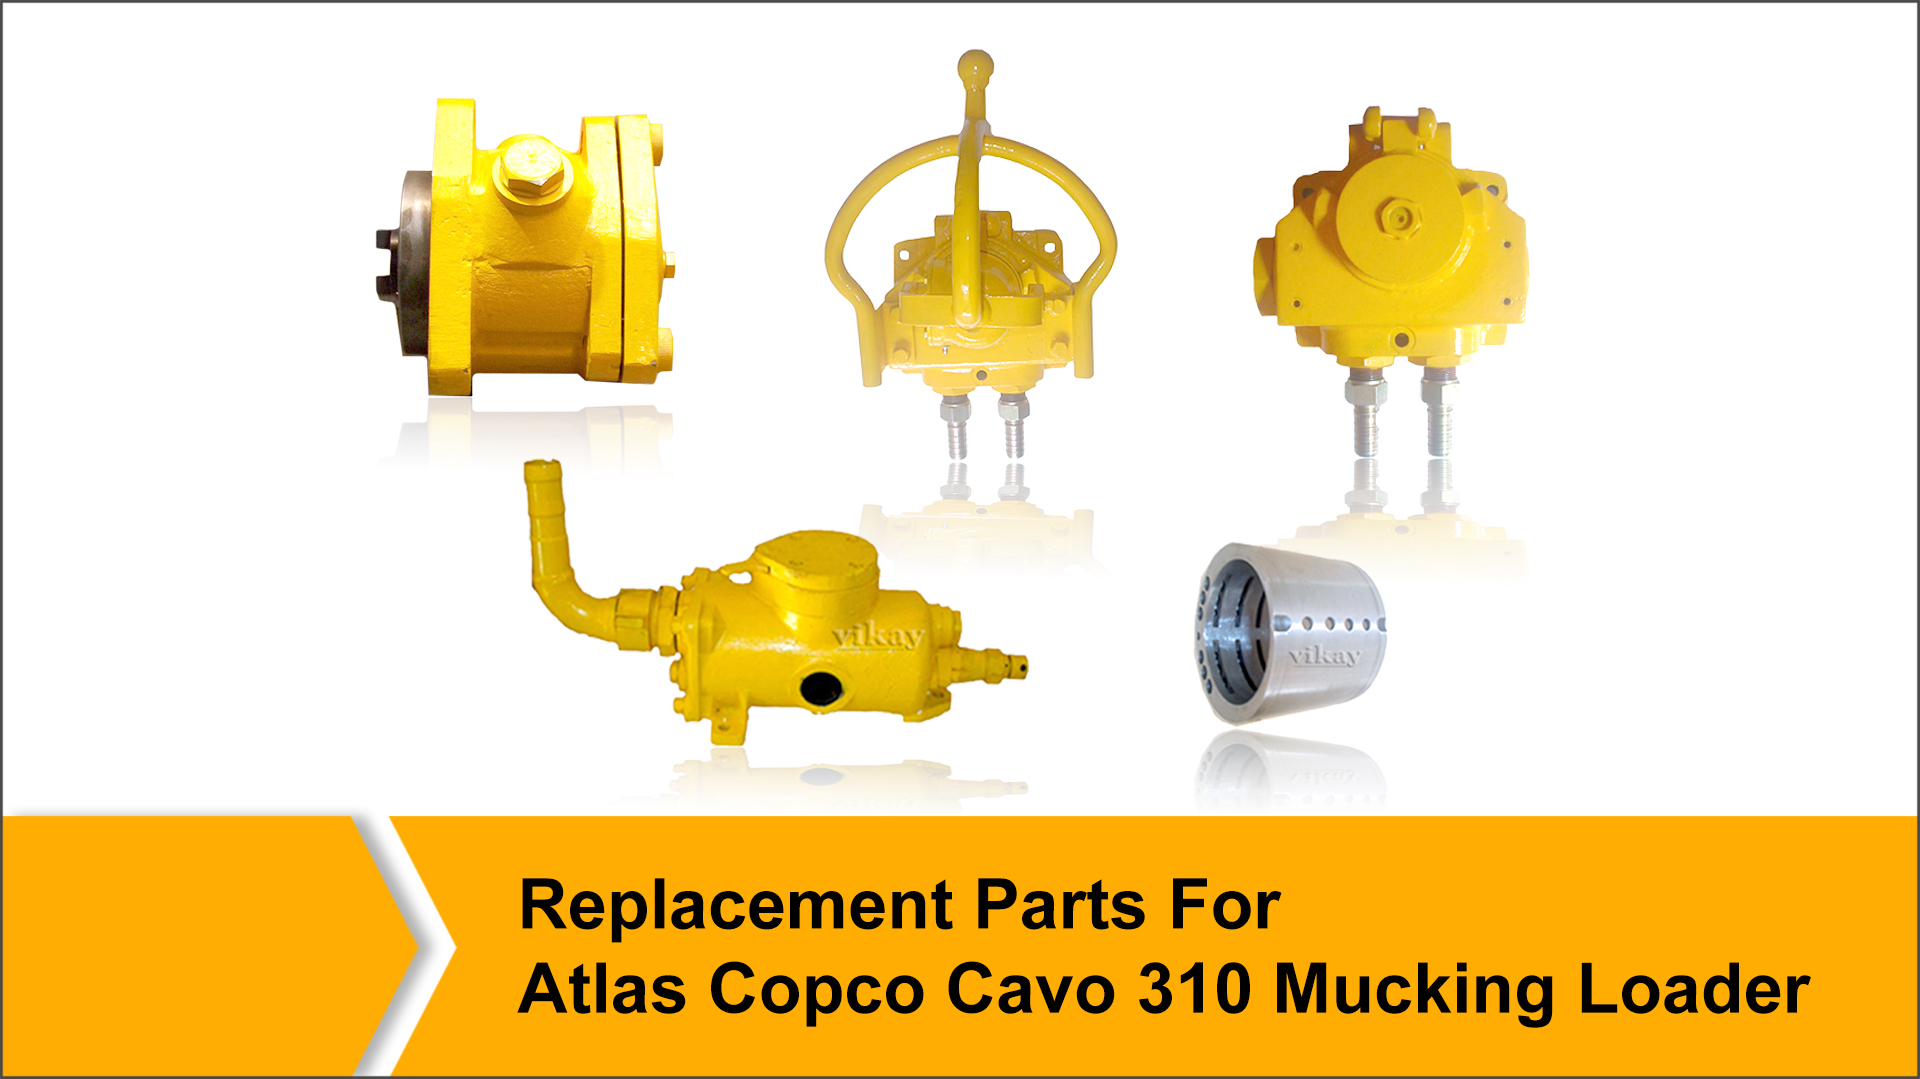 Replacement Parts for Atlas Copco Cavo 310 Mucking loader